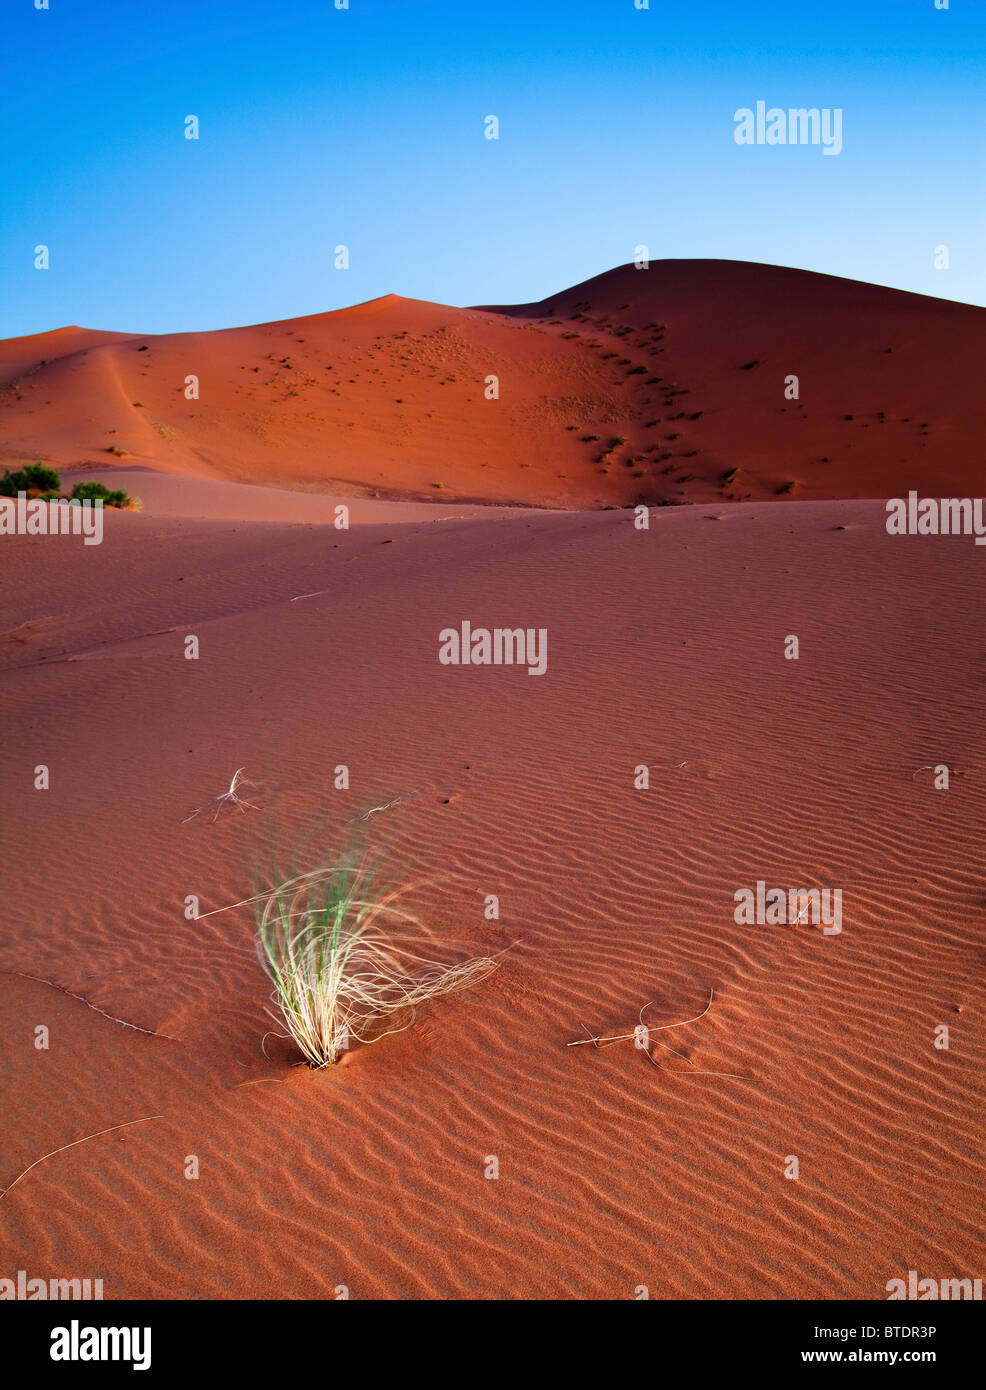 Blades of grass blowing in the breeze in the Sahara desert - Stock Image